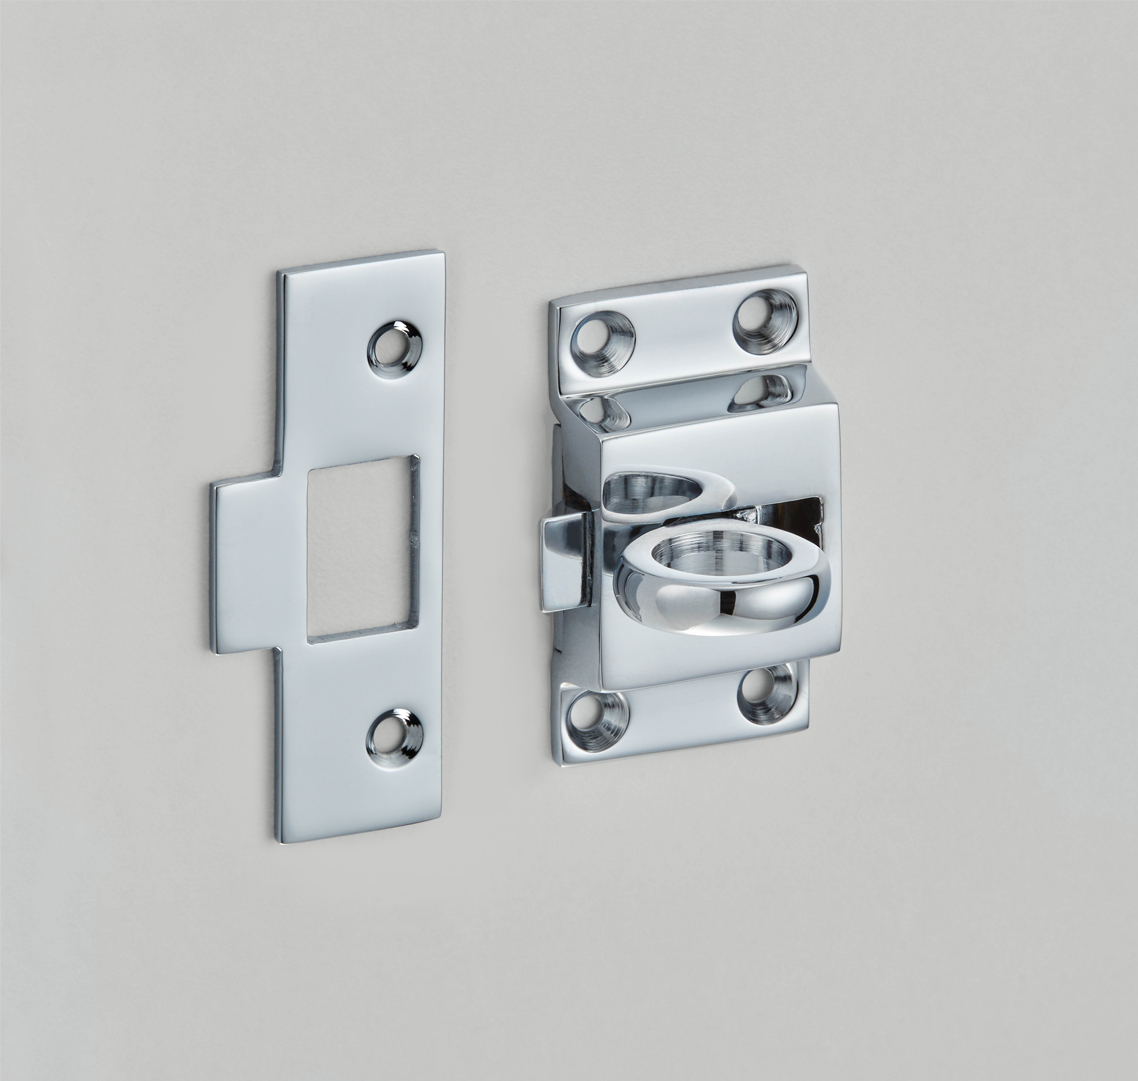 Fanlight Catch with Mortice Plate